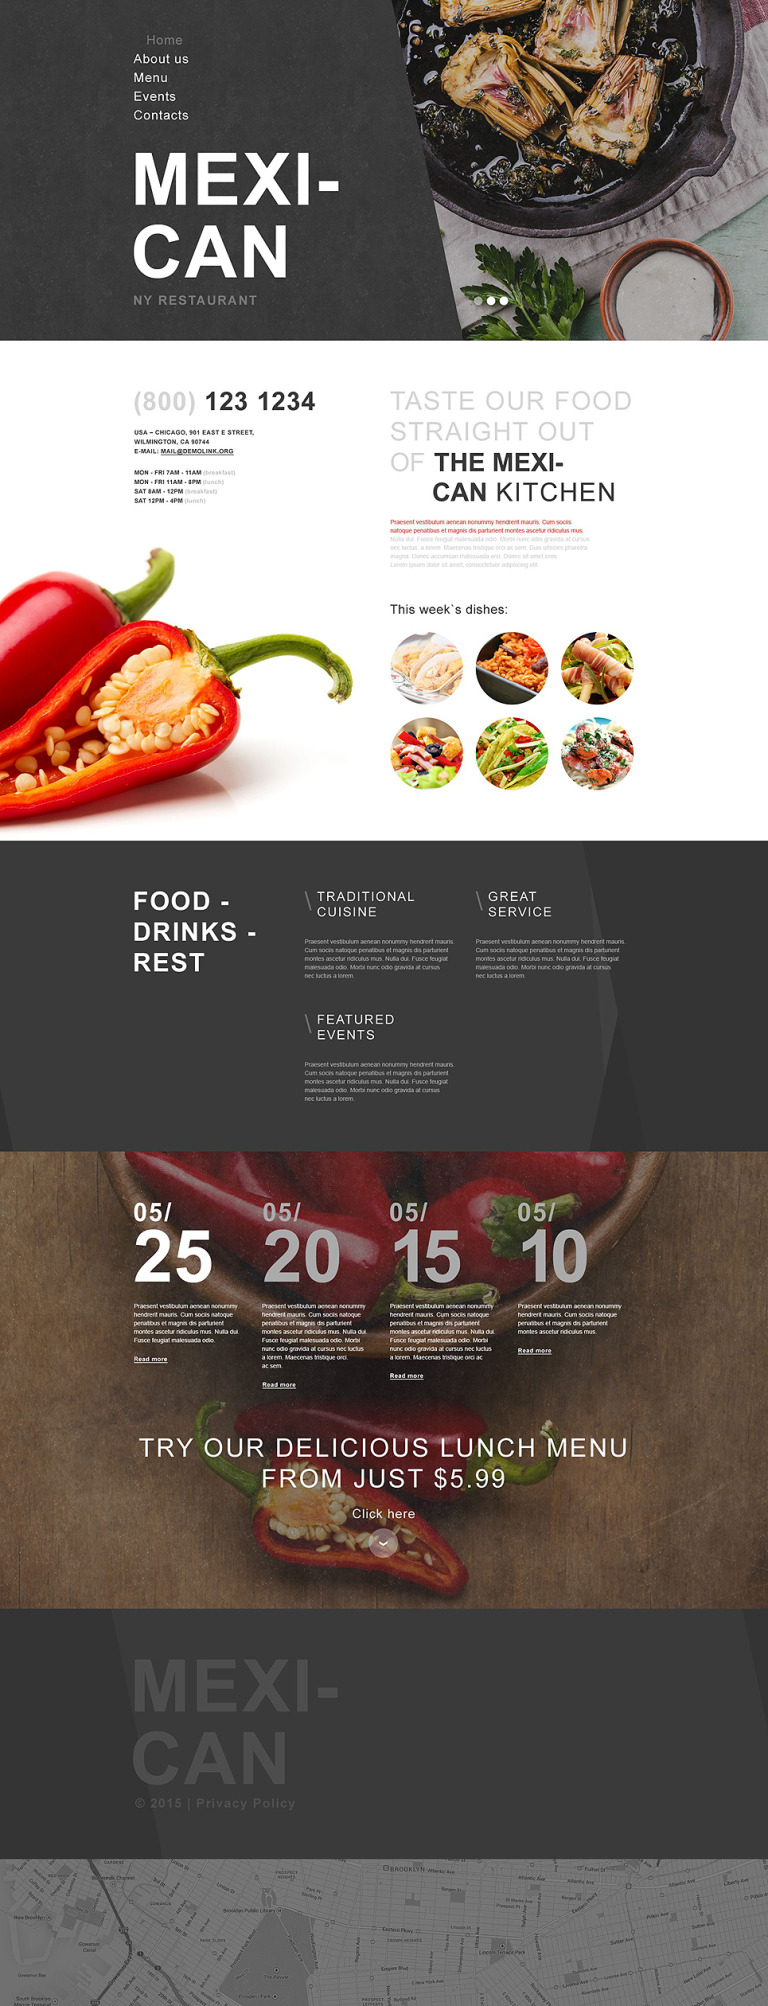 Mexican Restaurant Muse Template New Screenshots BIG